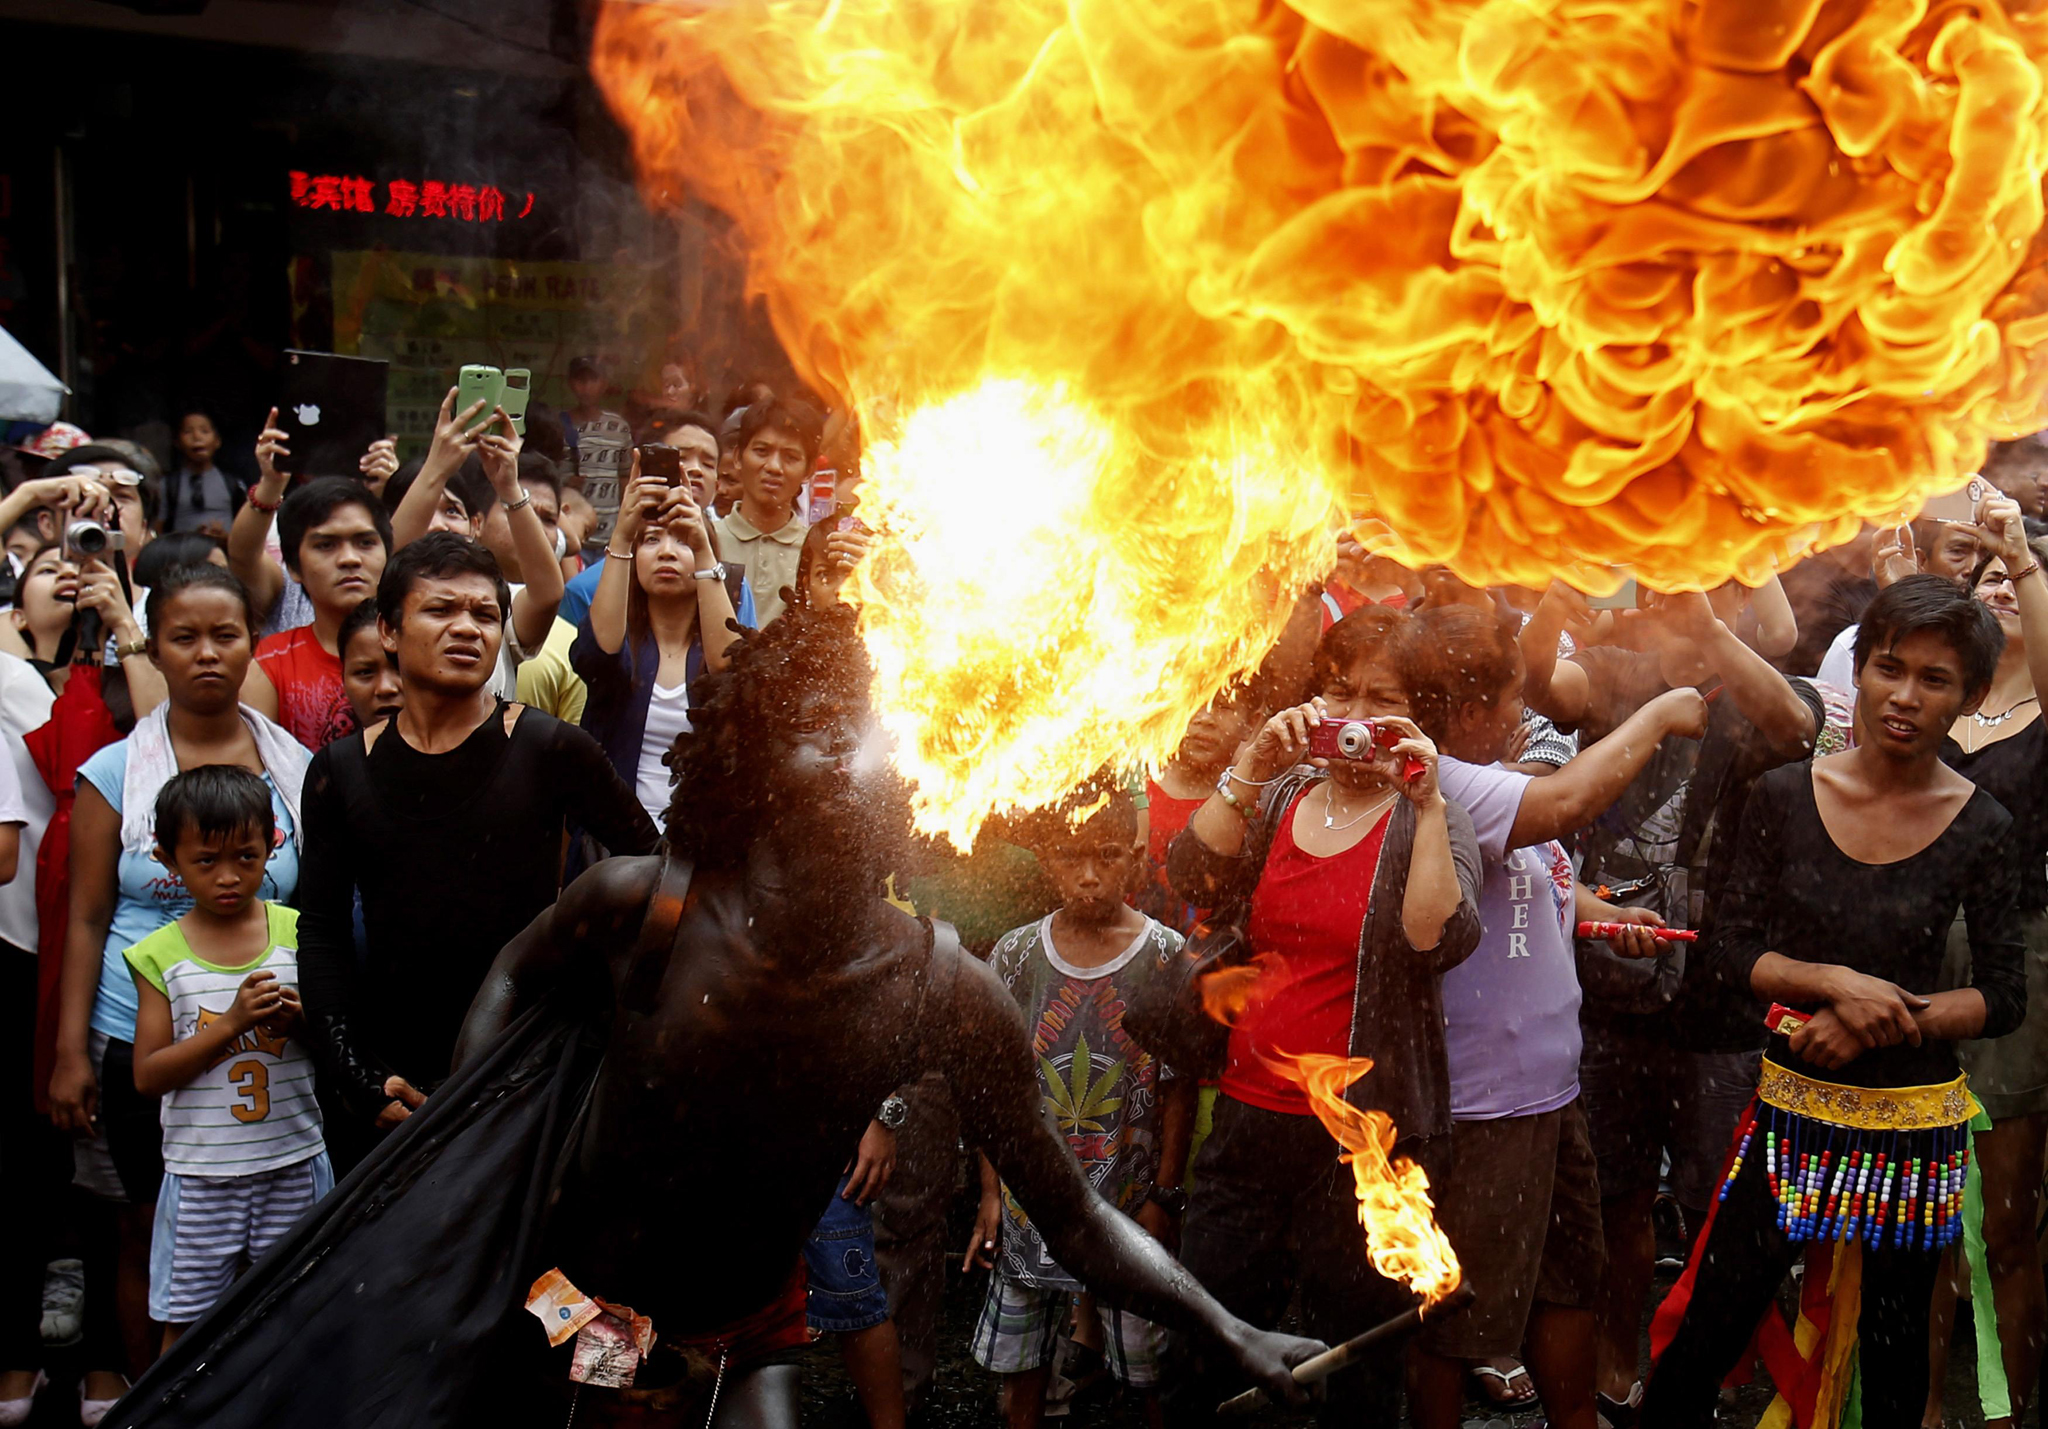 A reveller blows fire during Lunar New Year celebrations at Manila's Chinatown...A reveller blows fire during Lunar New Year celebrations at Manila's Chinatown February 19, 2015. The Chinese Lunar New Year on February 19 will welcome the Year of the Sheep (also known as the Year of the Goat or Ram).      REUTERS/Erik De Castro  (PHILIPPINES - Tags: SOCIETY)